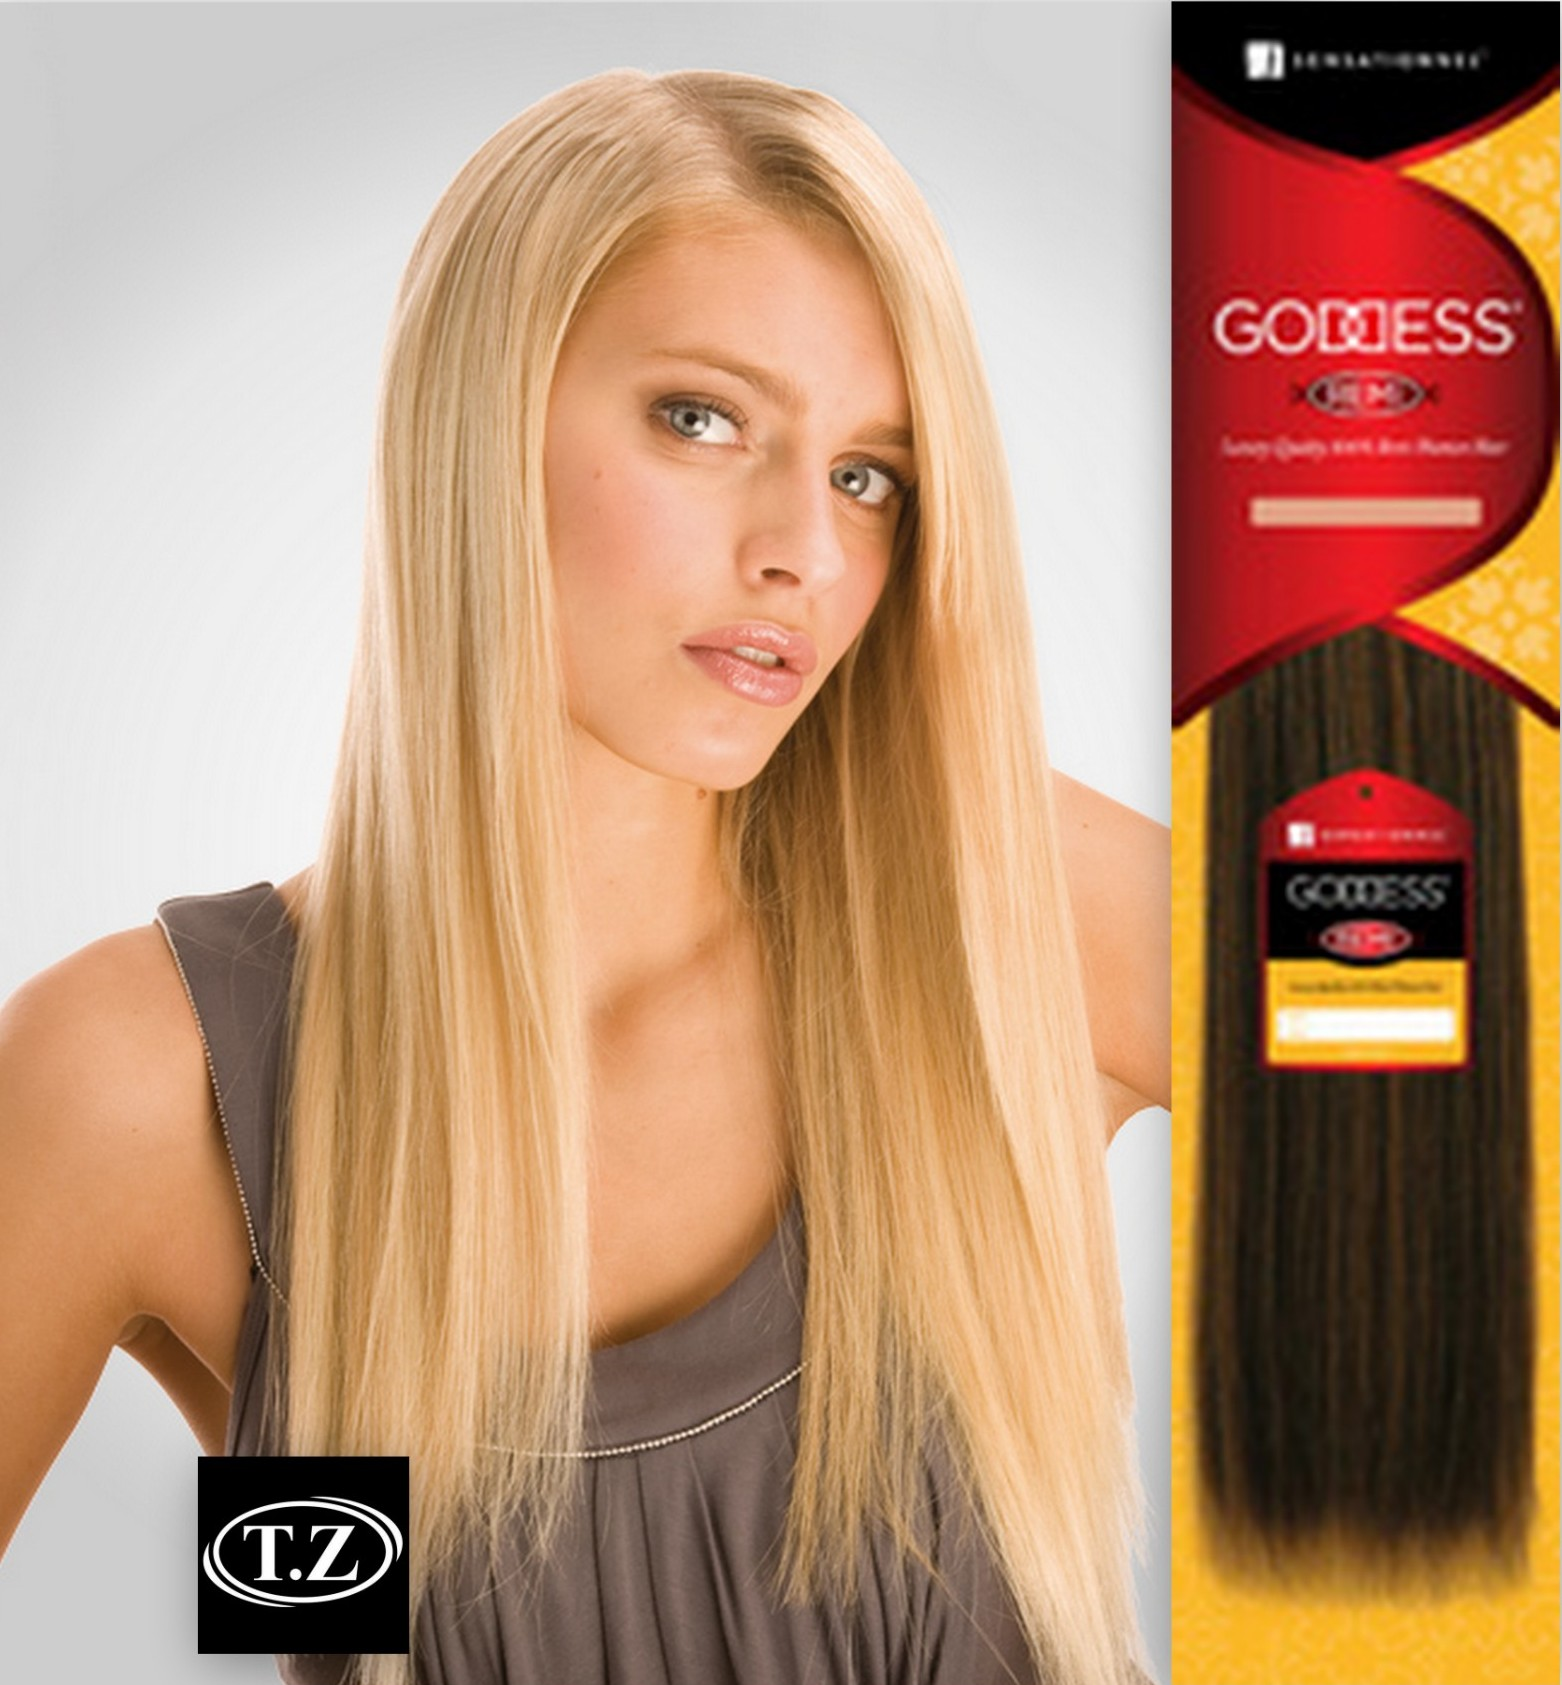 Goddess clip in hair extensions reviews best human hair extensions goddess clip in hair extensions reviews 34 pmusecretfo Images